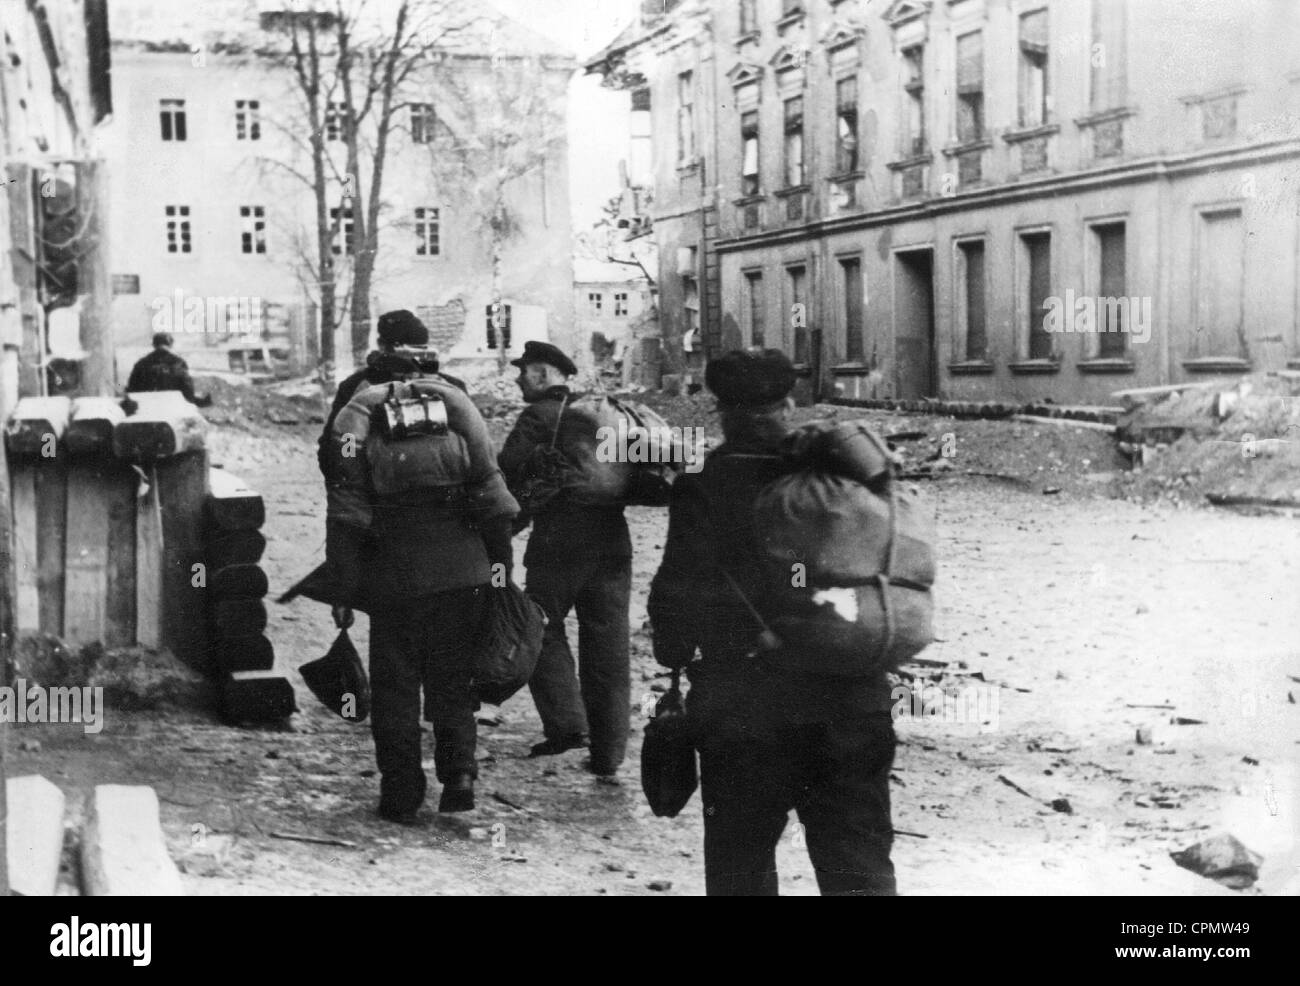 http://c8.alamy.com/comp/CPMW49/german-national-militia-in-silesia-1945-CPMW49.jpg